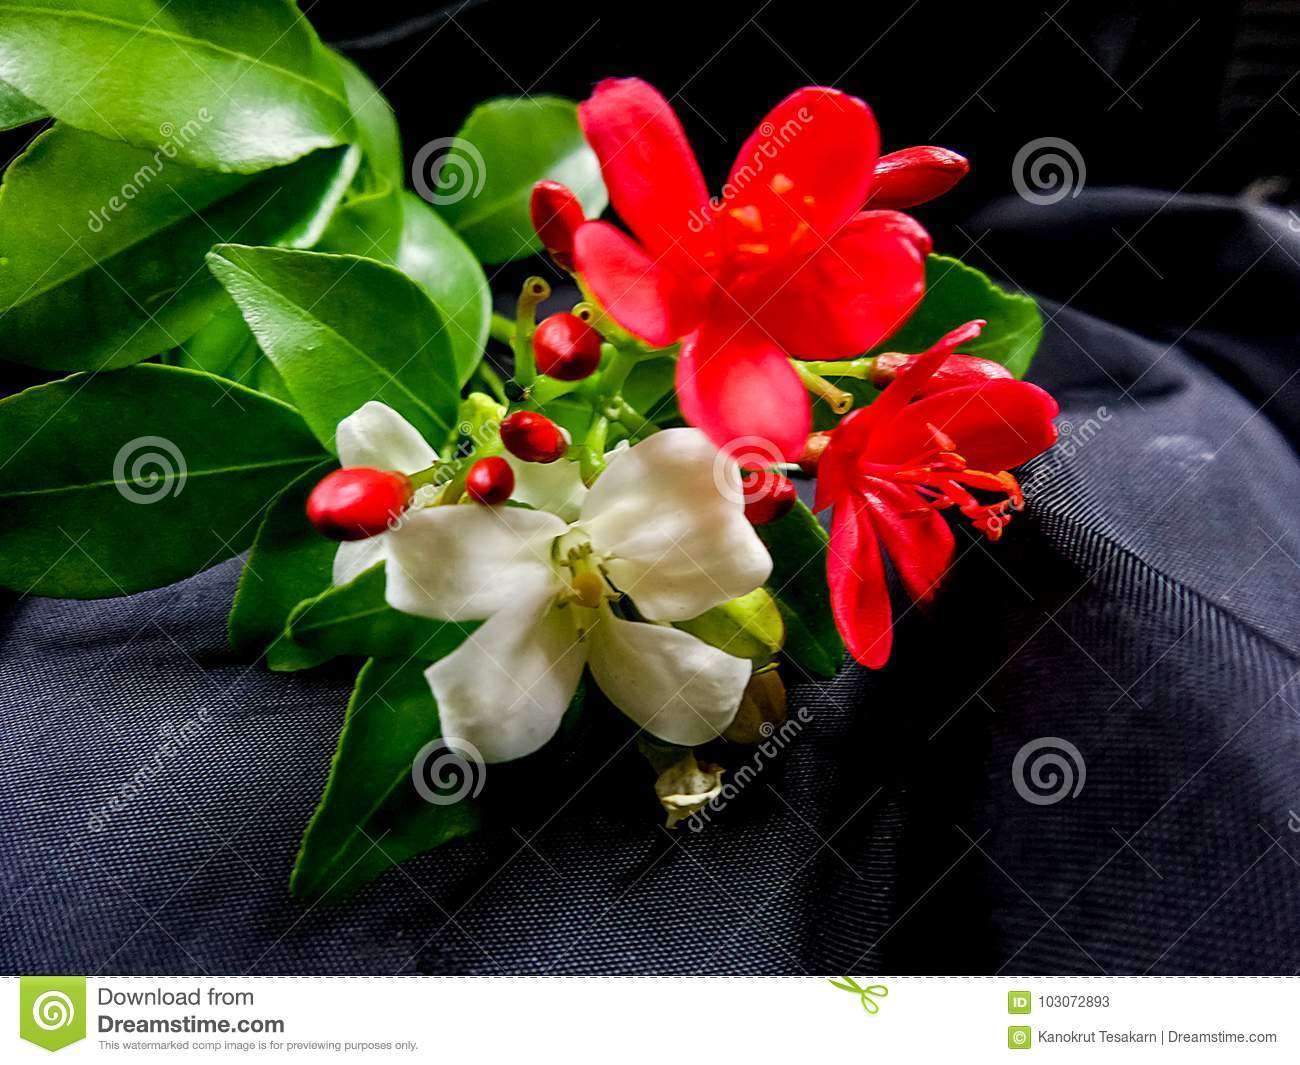 Red And White Flowers With Green Leaves On Black Backgroud Stock